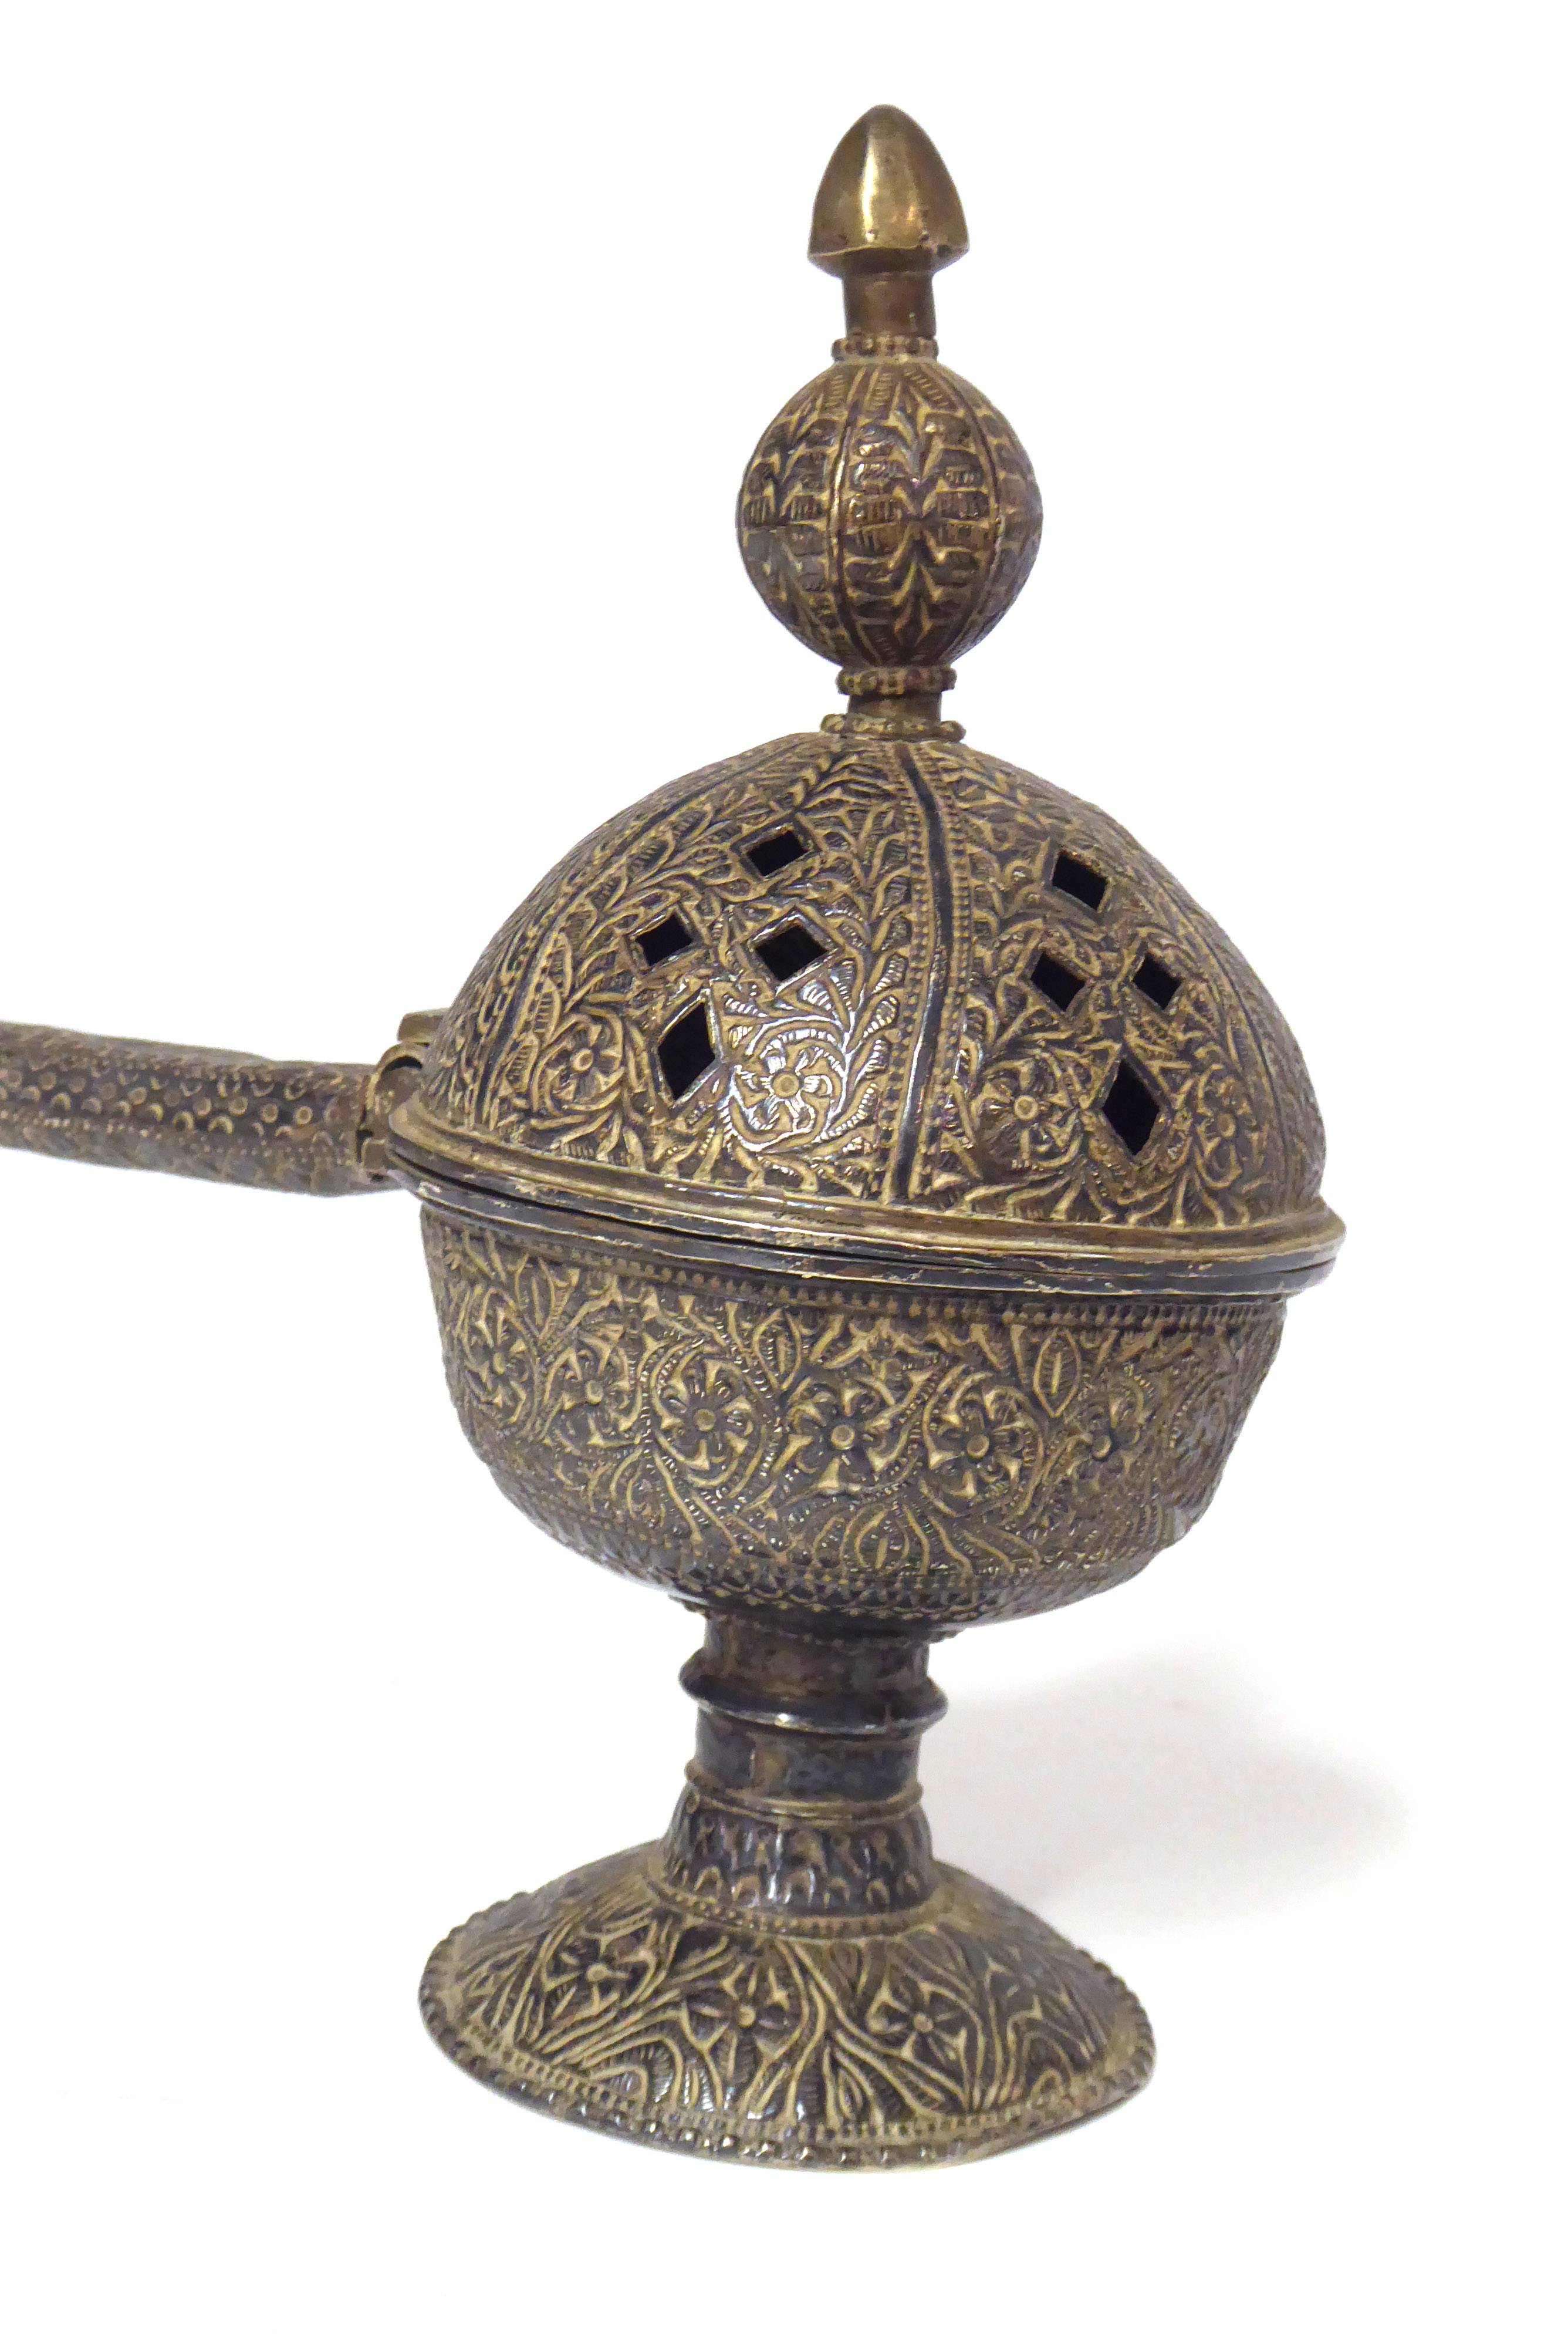 Lot 8 - A 19th CENTURY PERSIAN WHITE METAL INCENSE BURNER Spherical form with carry handle and engraved